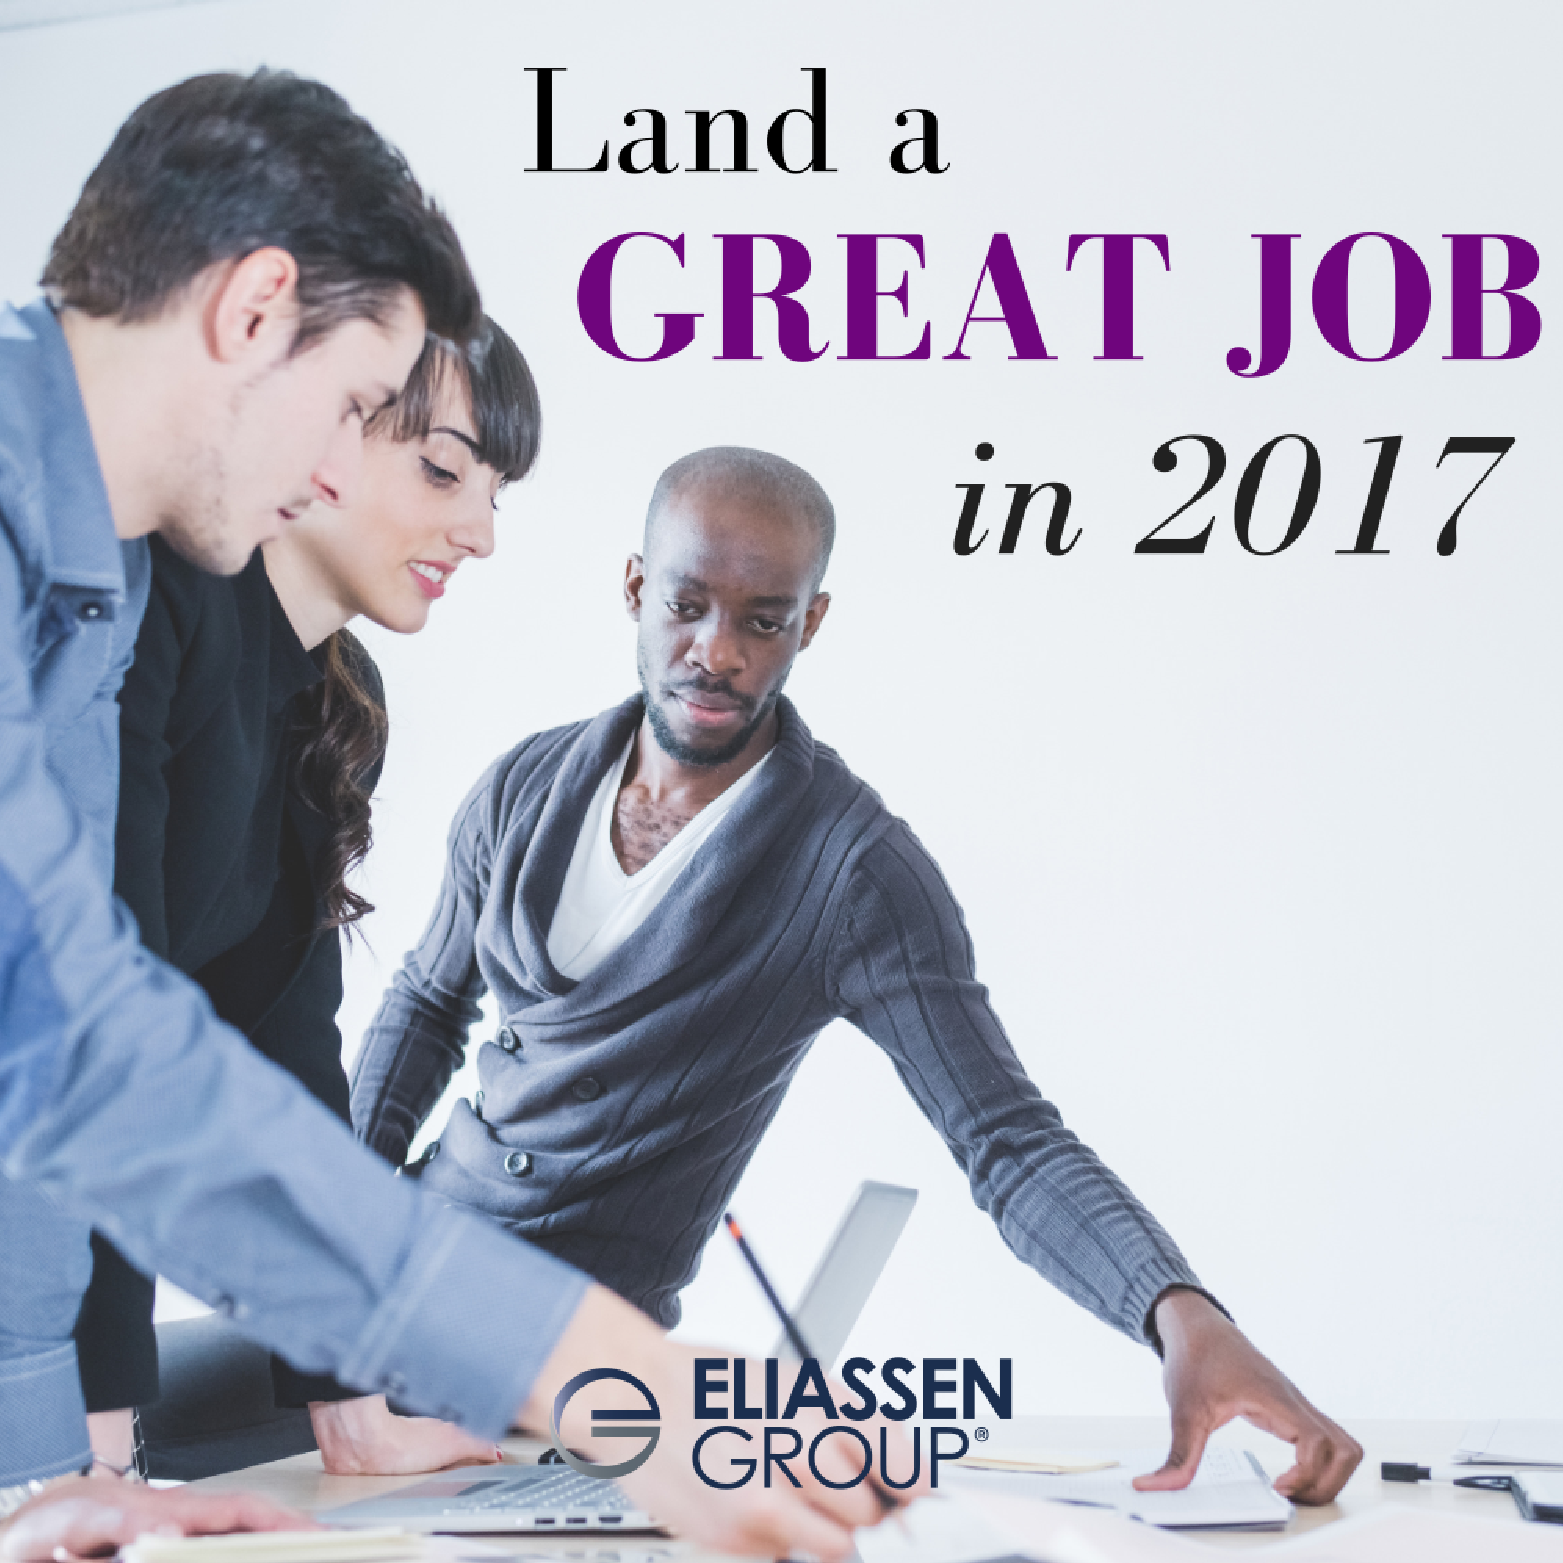 Land a great job in 2017 with this powerful combination